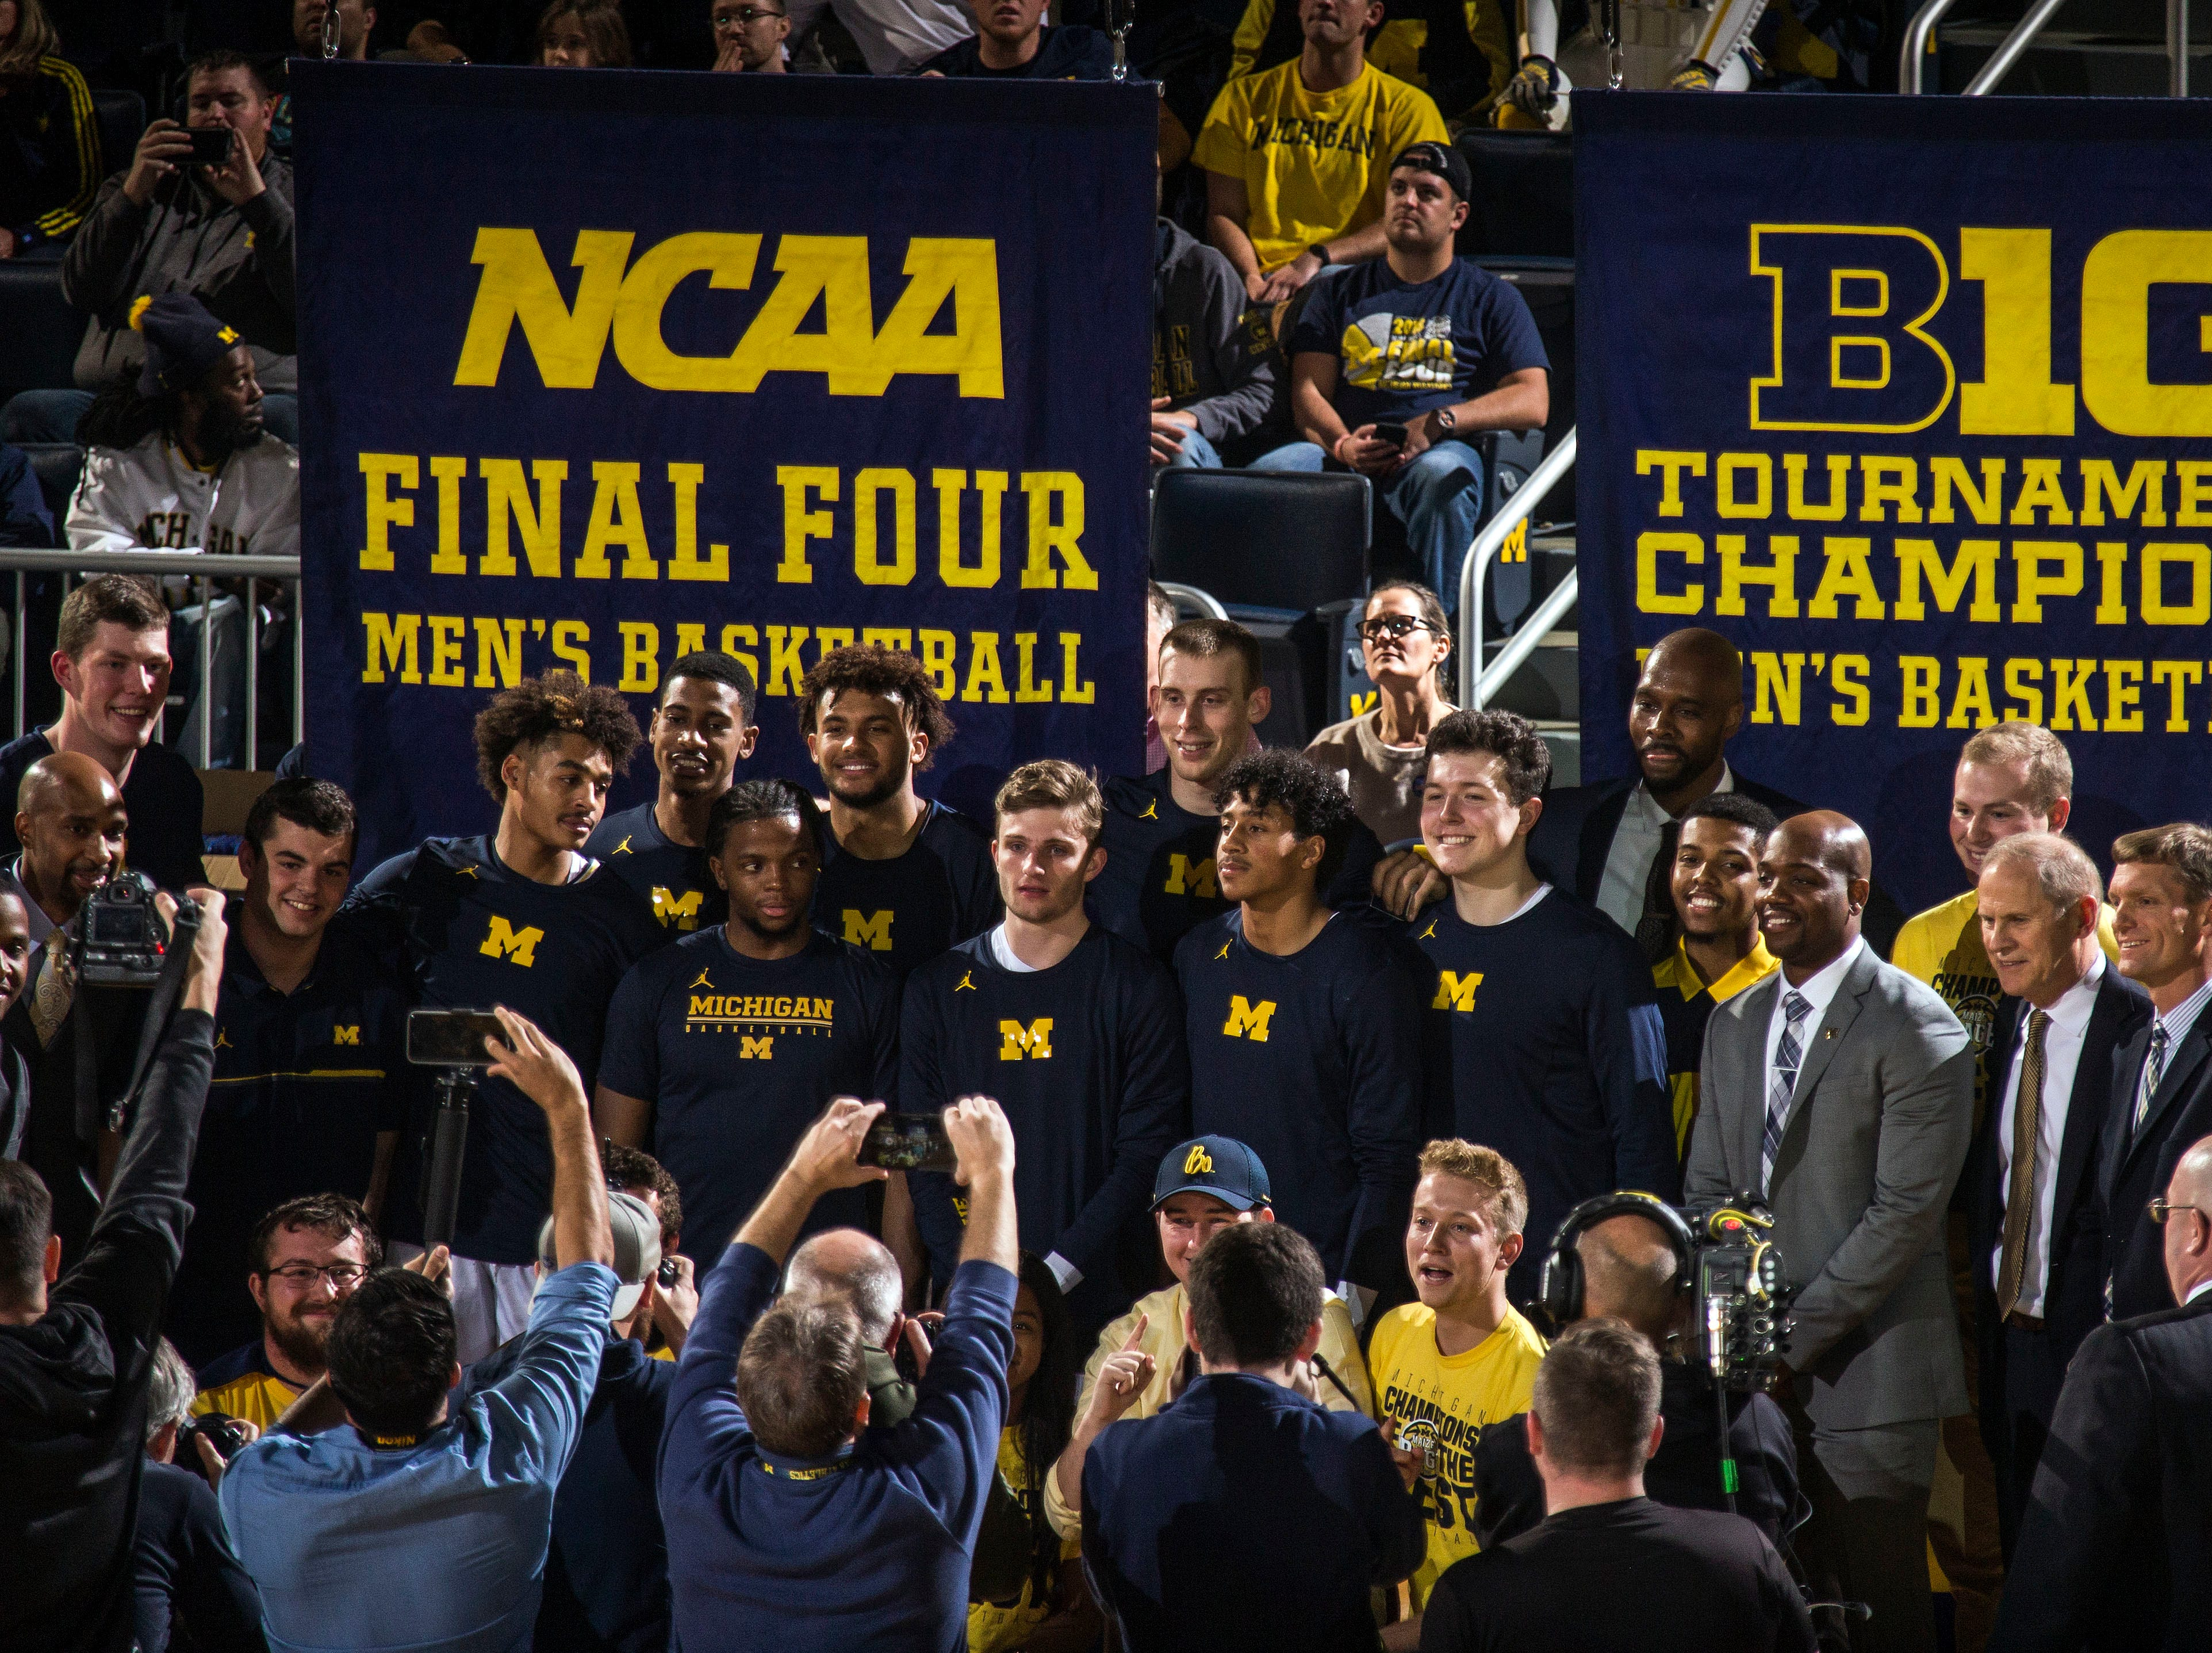 Michigan head coach John Beilein, third from right, poses for photos with his team and newly unveiled Big Ten Tournament Champions and NCAA Final Four banners, before the first half of an NCAA college basketball game against Norfolk State at Crisler Center in Ann Arbor, Mich., Tuesday, Nov. 6, 2018. (AP Photo/Tony Ding)